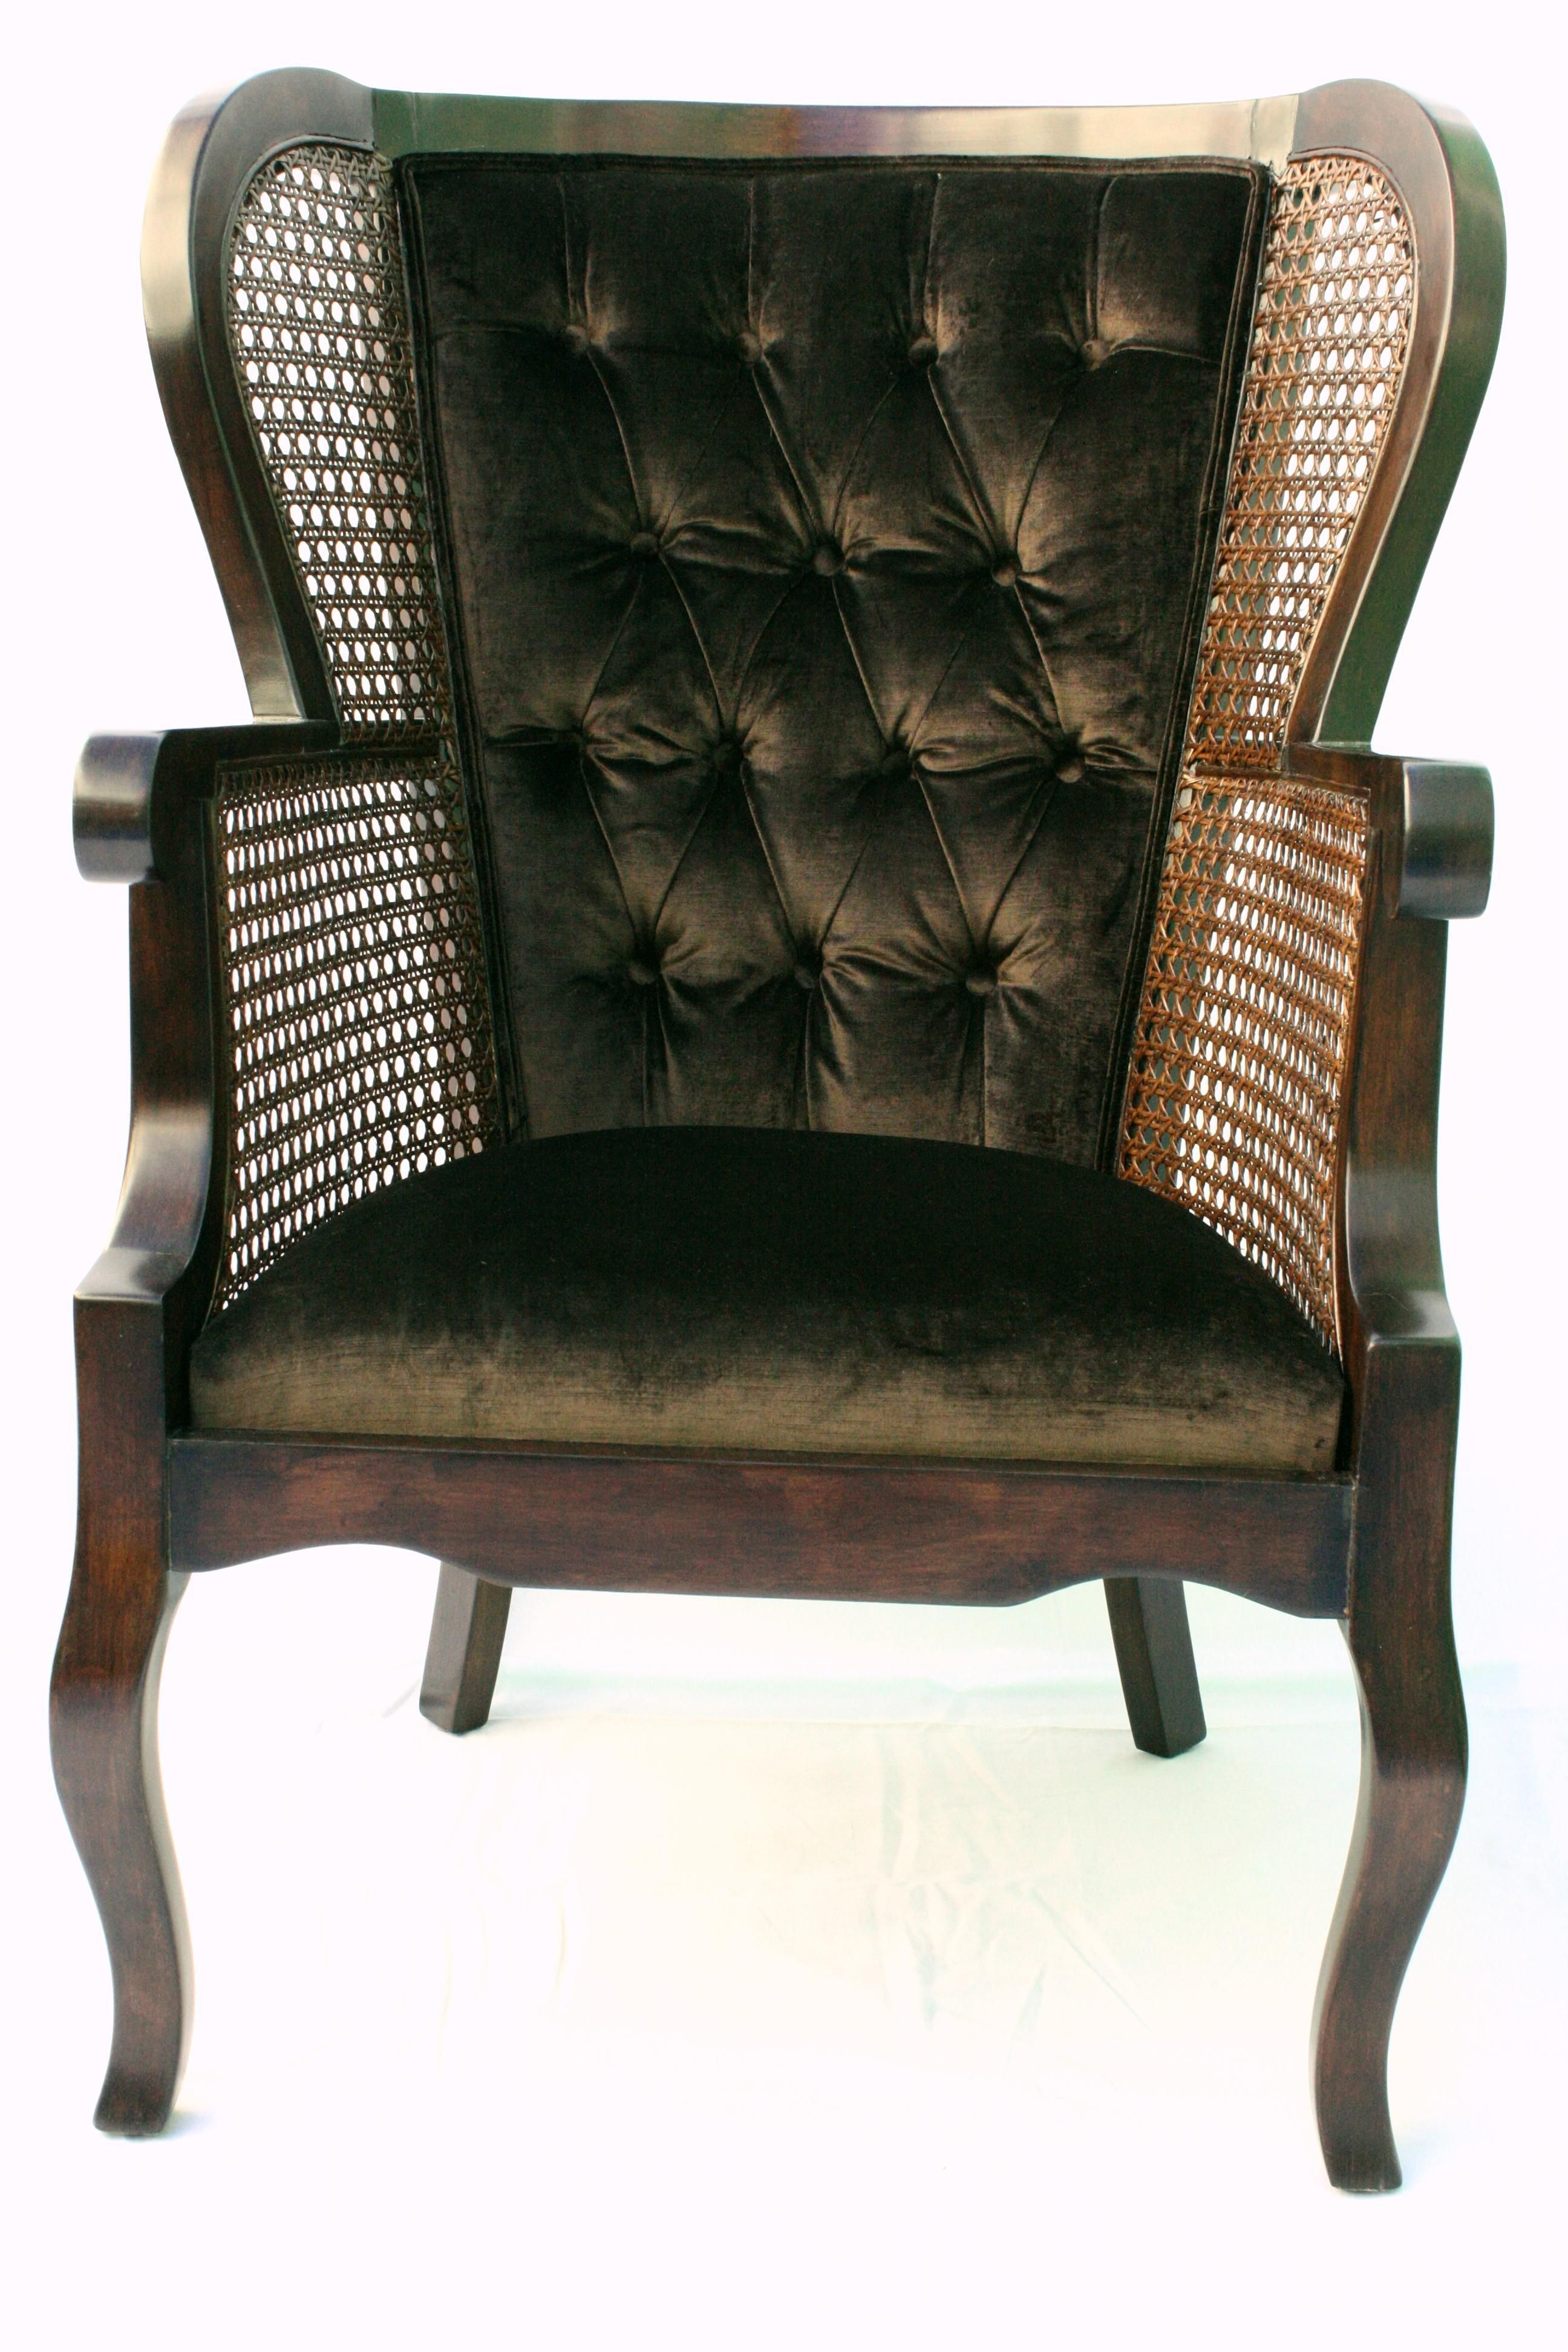 Vintage Regency Cane High Wingback Chair Wingback chair